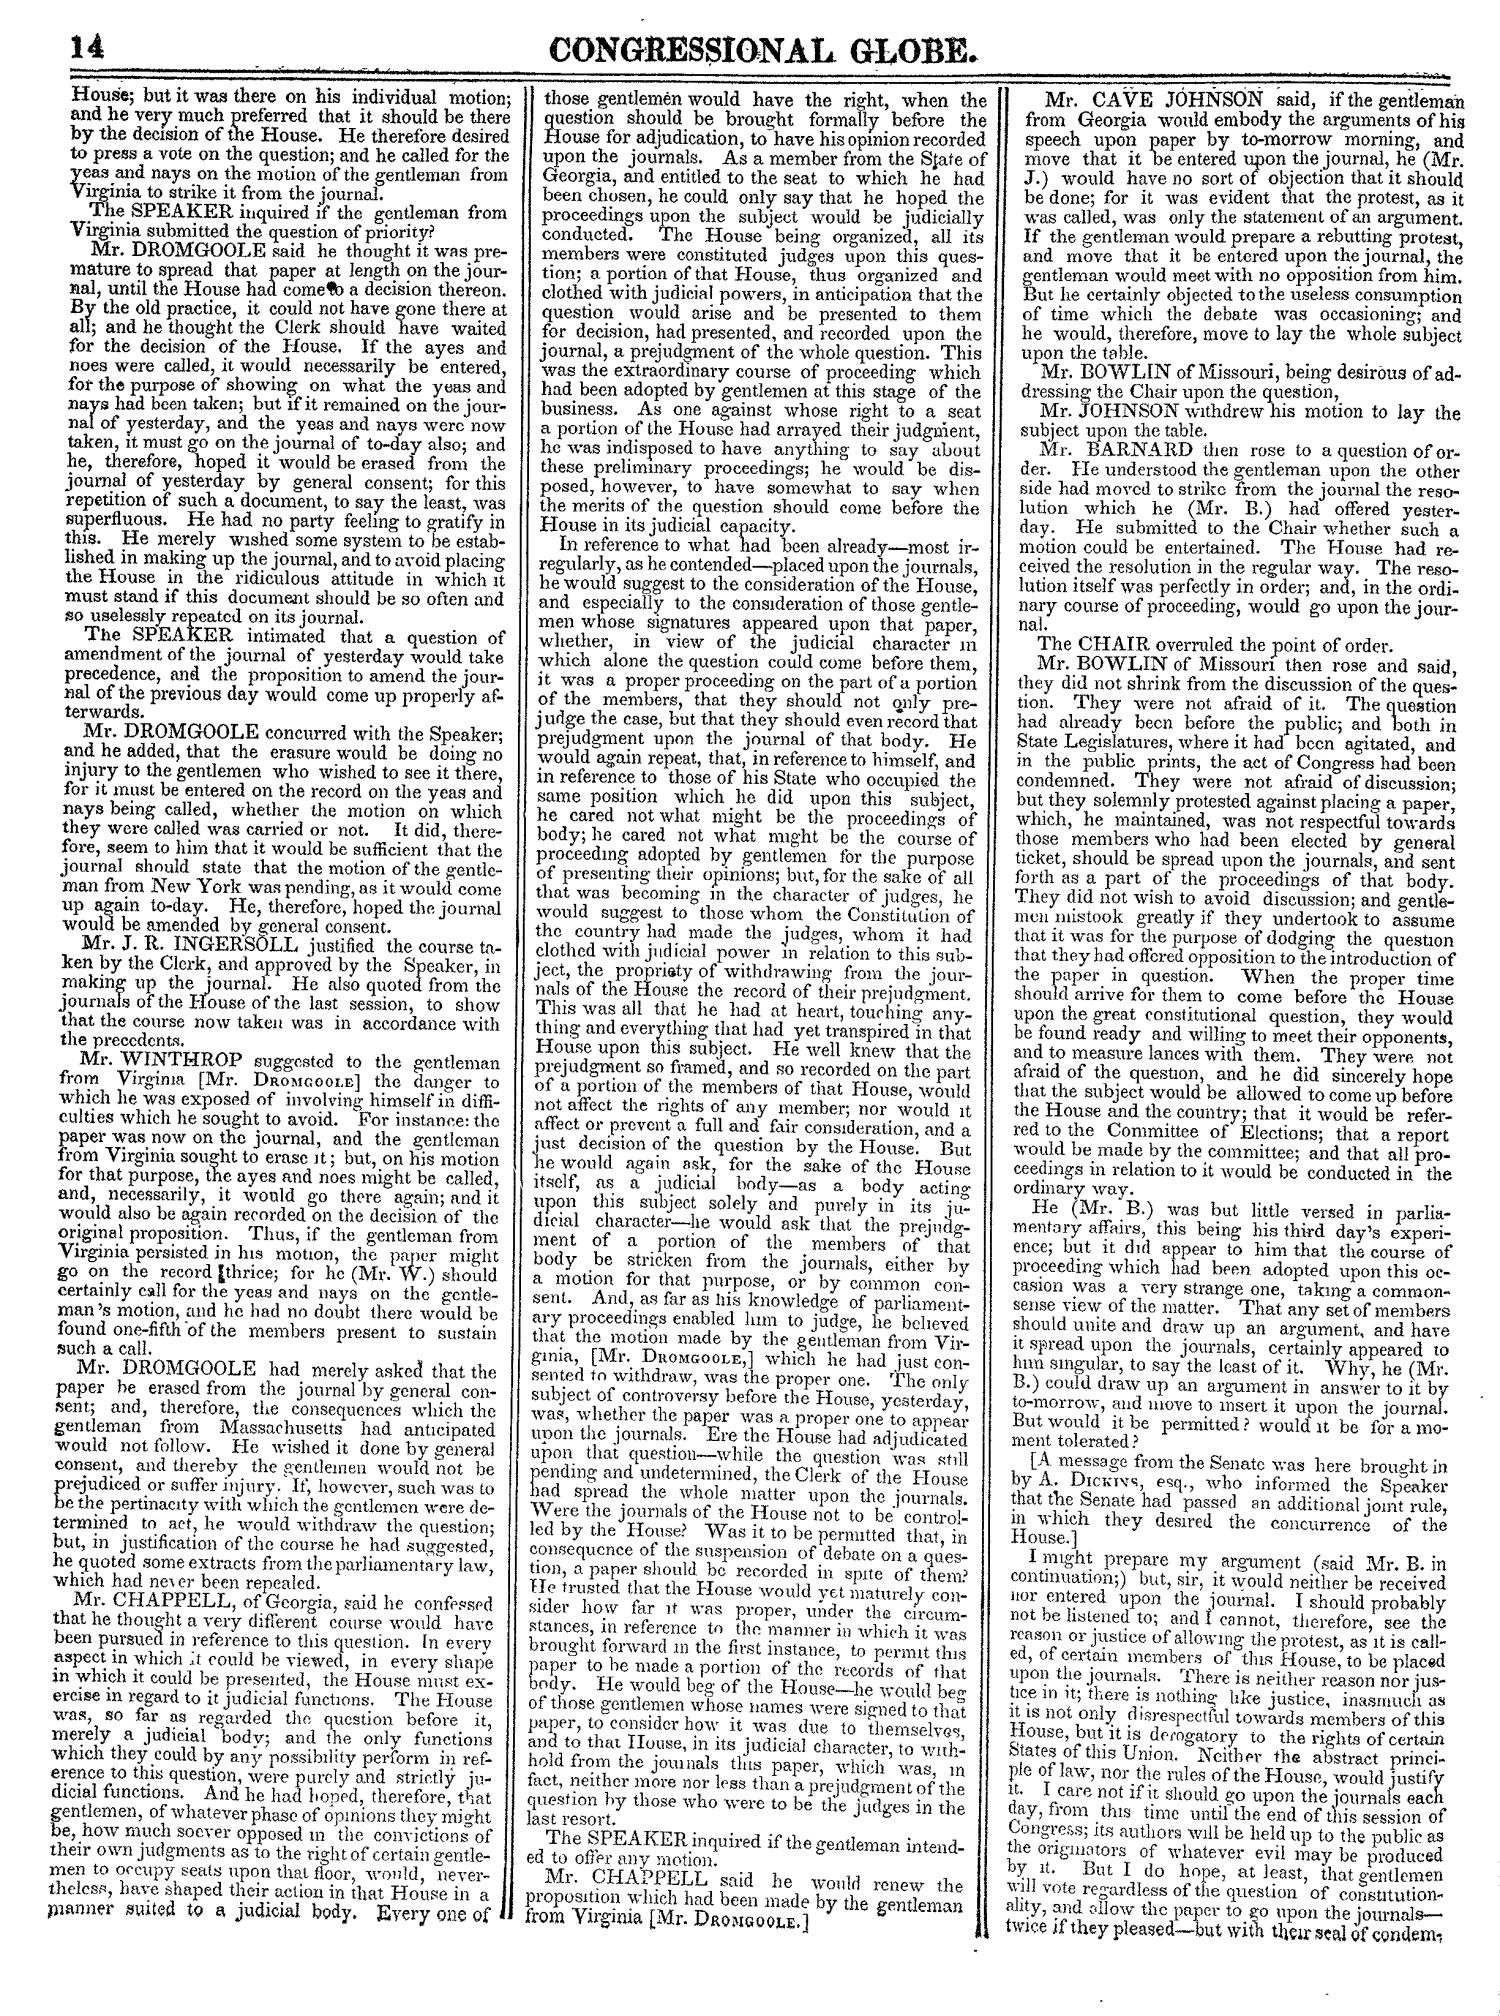 The Congressional Globe, Volume 13, Part 1: Twenty-Eighth Congress, First Session                                                                                                      14